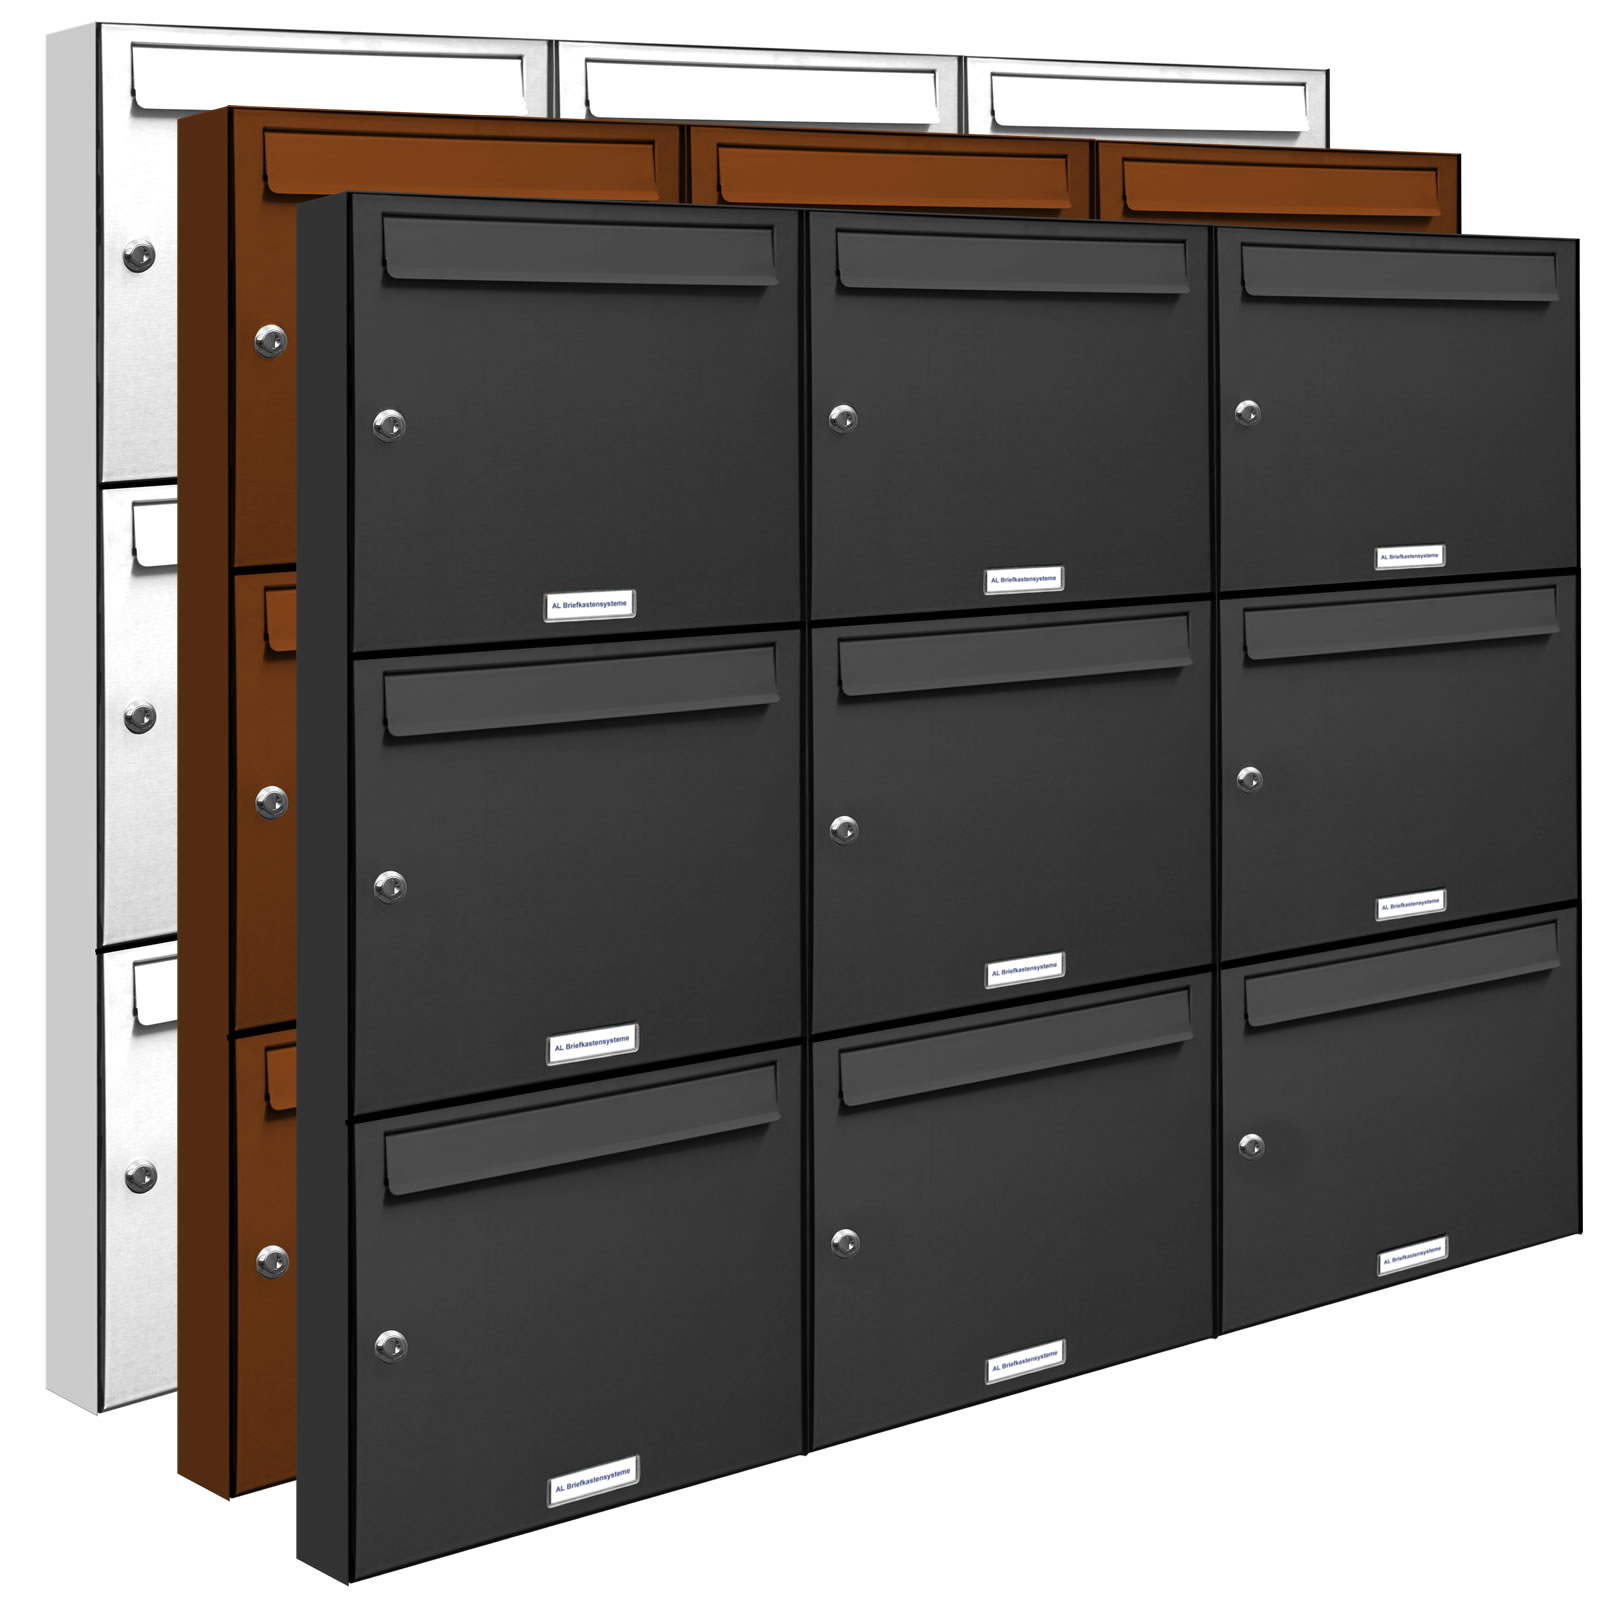 9er 3x3 aufputzanlage post stehend jetzt g nstig. Black Bedroom Furniture Sets. Home Design Ideas